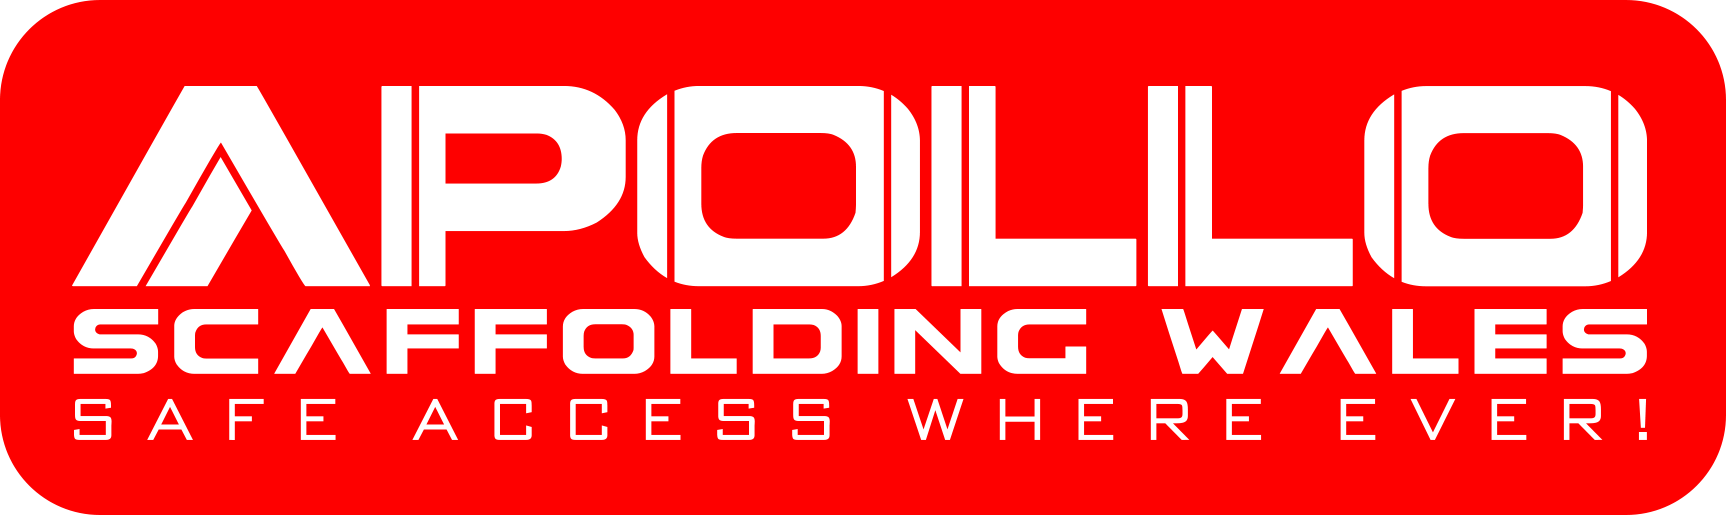 Apollo Scaffolding Wales – Scaffolding Services in Wales